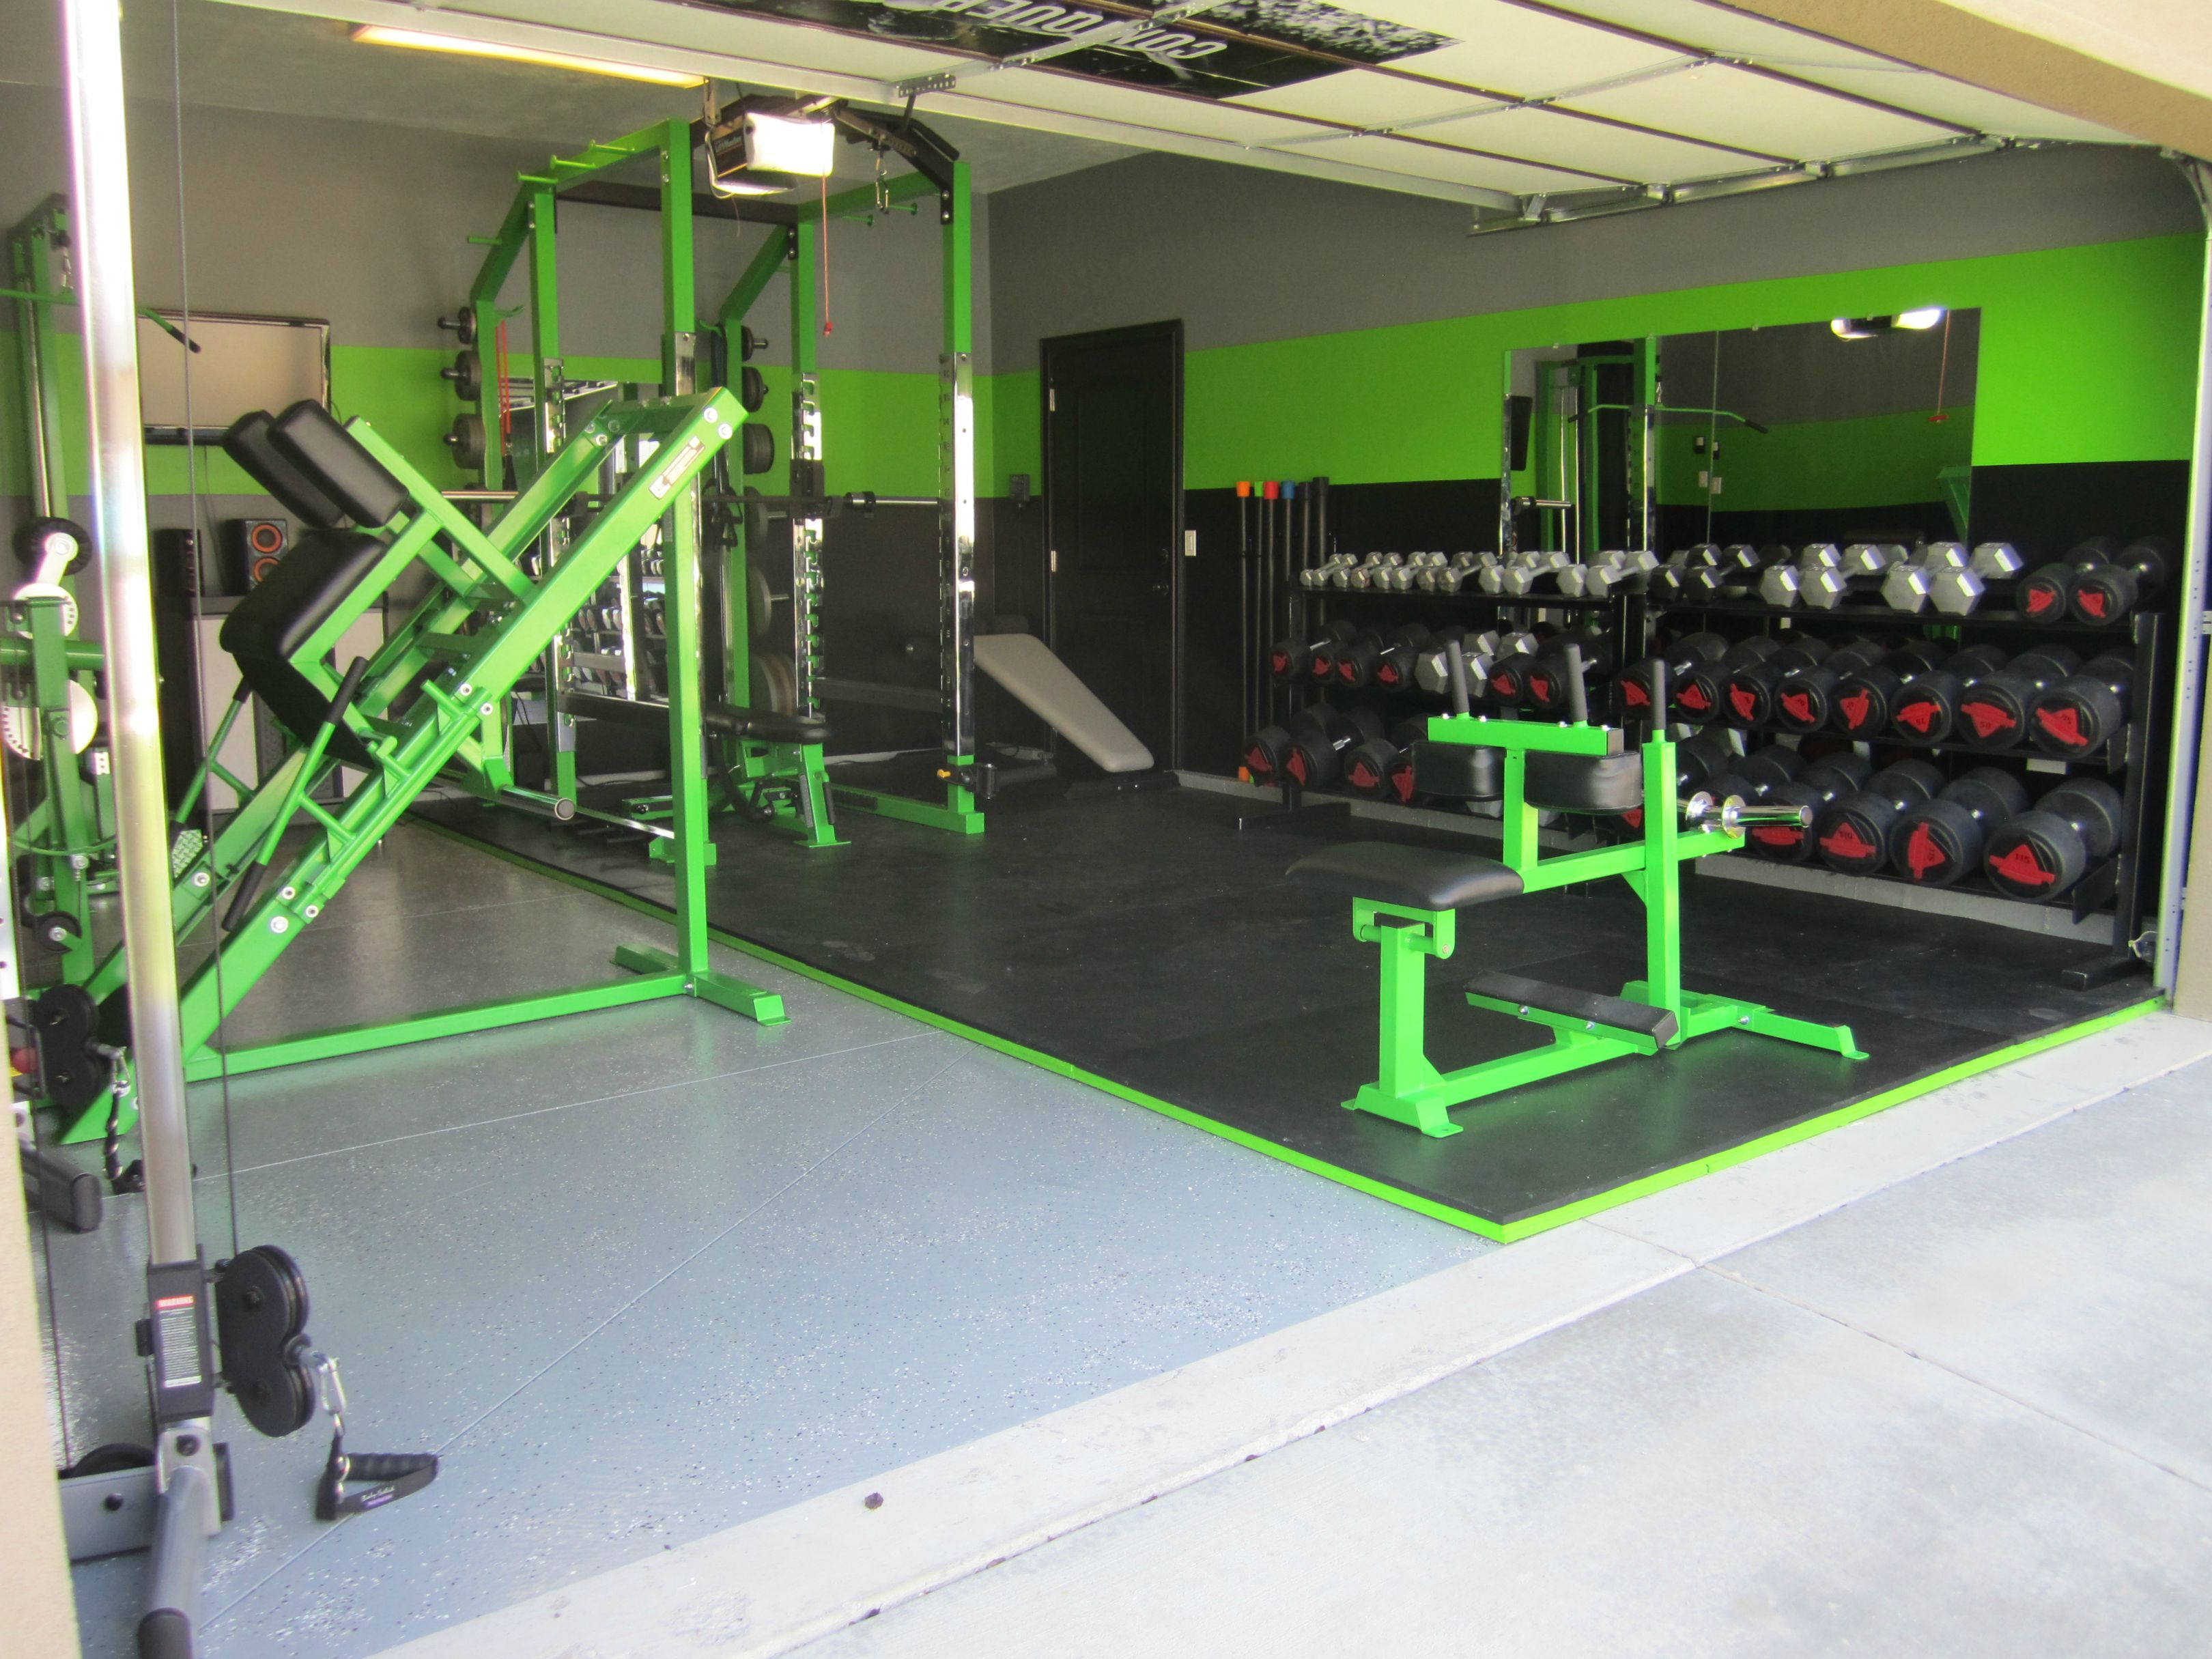 Awesome Home Garage Gym Just For The Health Of It Pinterest Garage Gym Gym And Gym Design